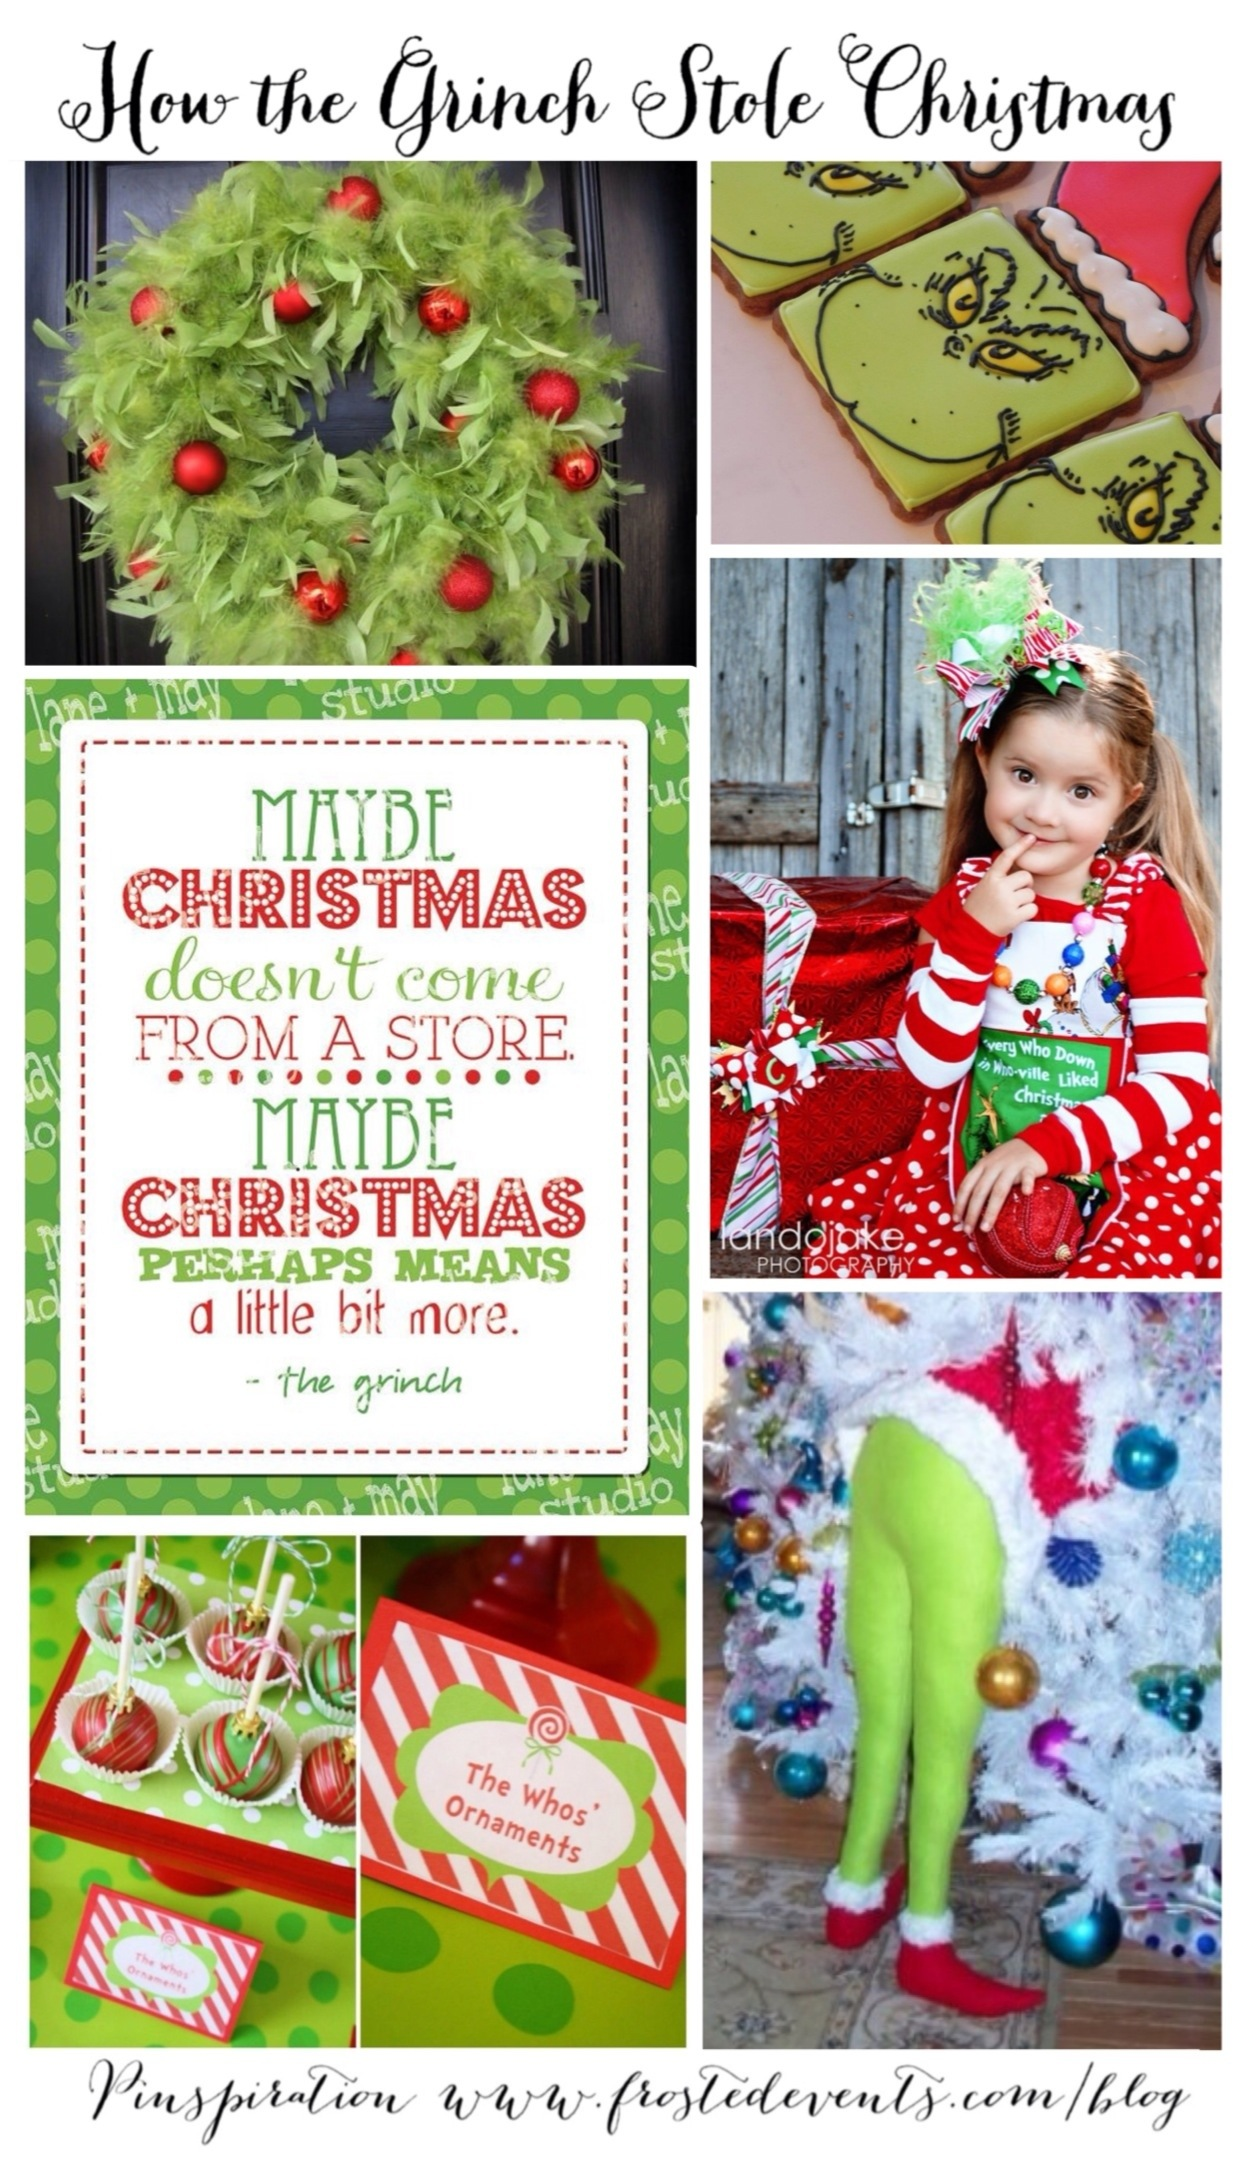 Christmas Ideas- How the Grinch Stole Christmas